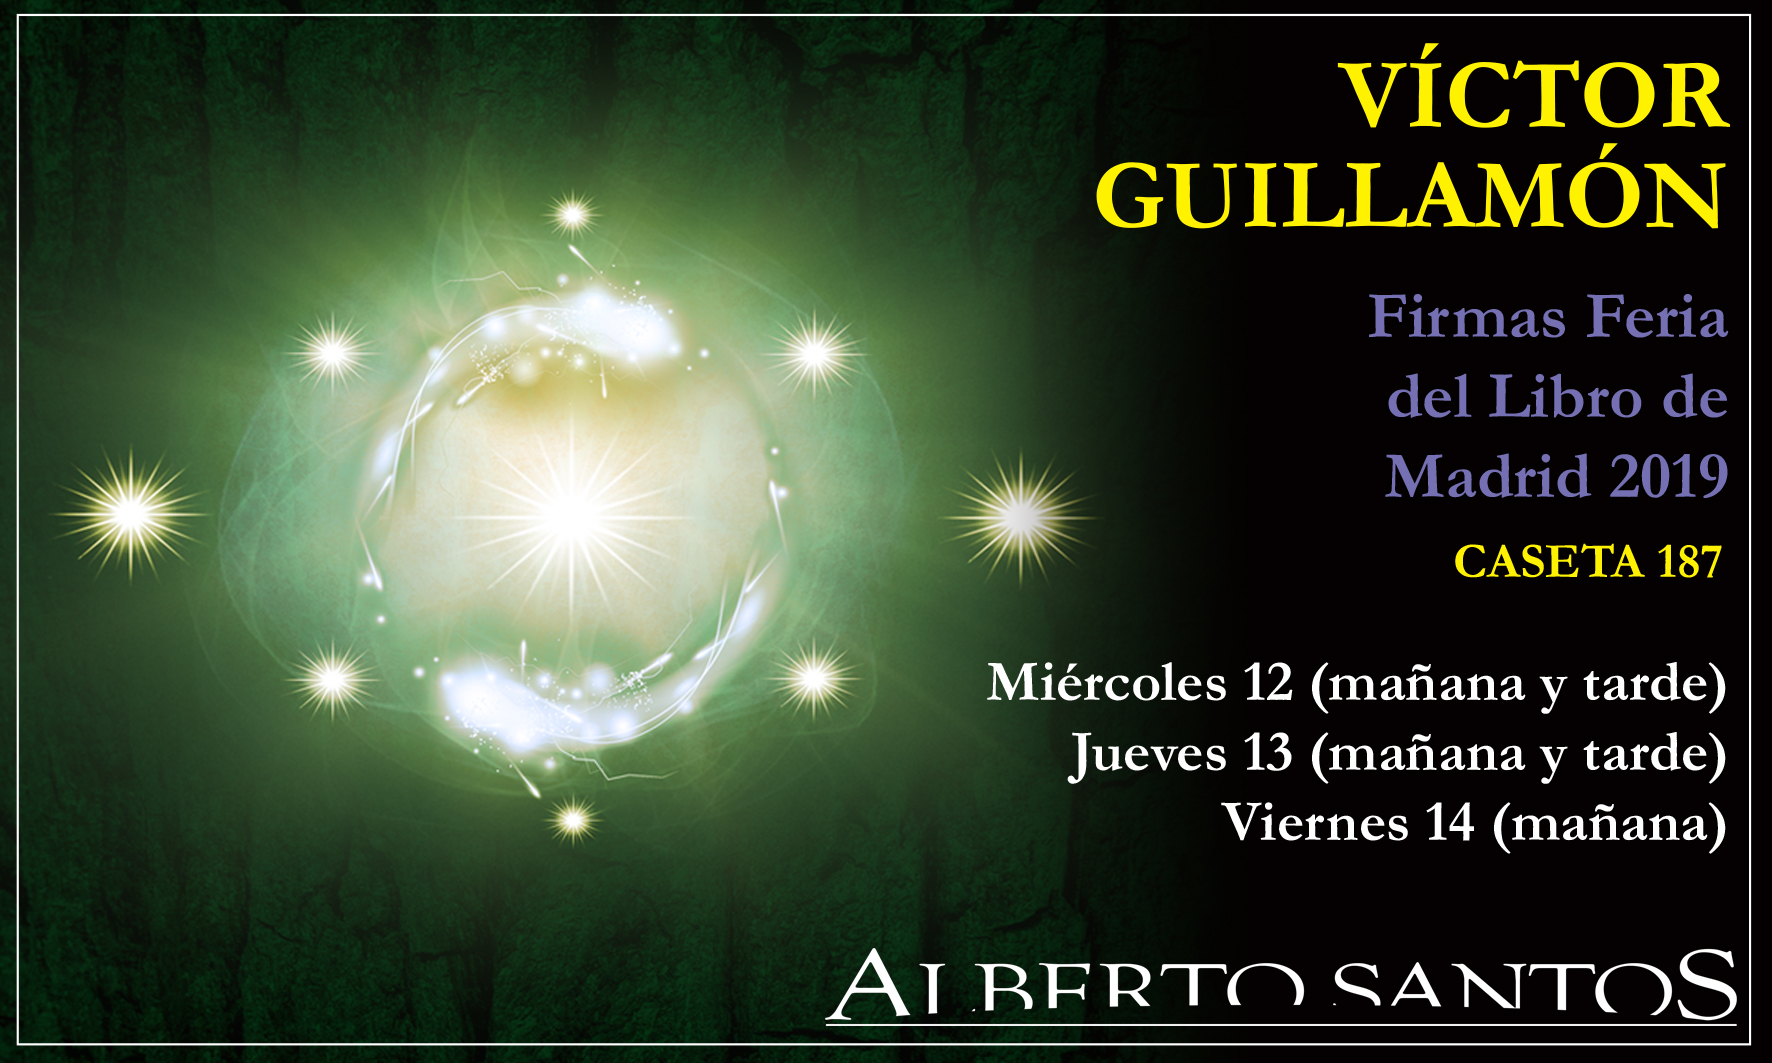 carteĺ-firmas-Victor-Guillamon-Madrid-2019